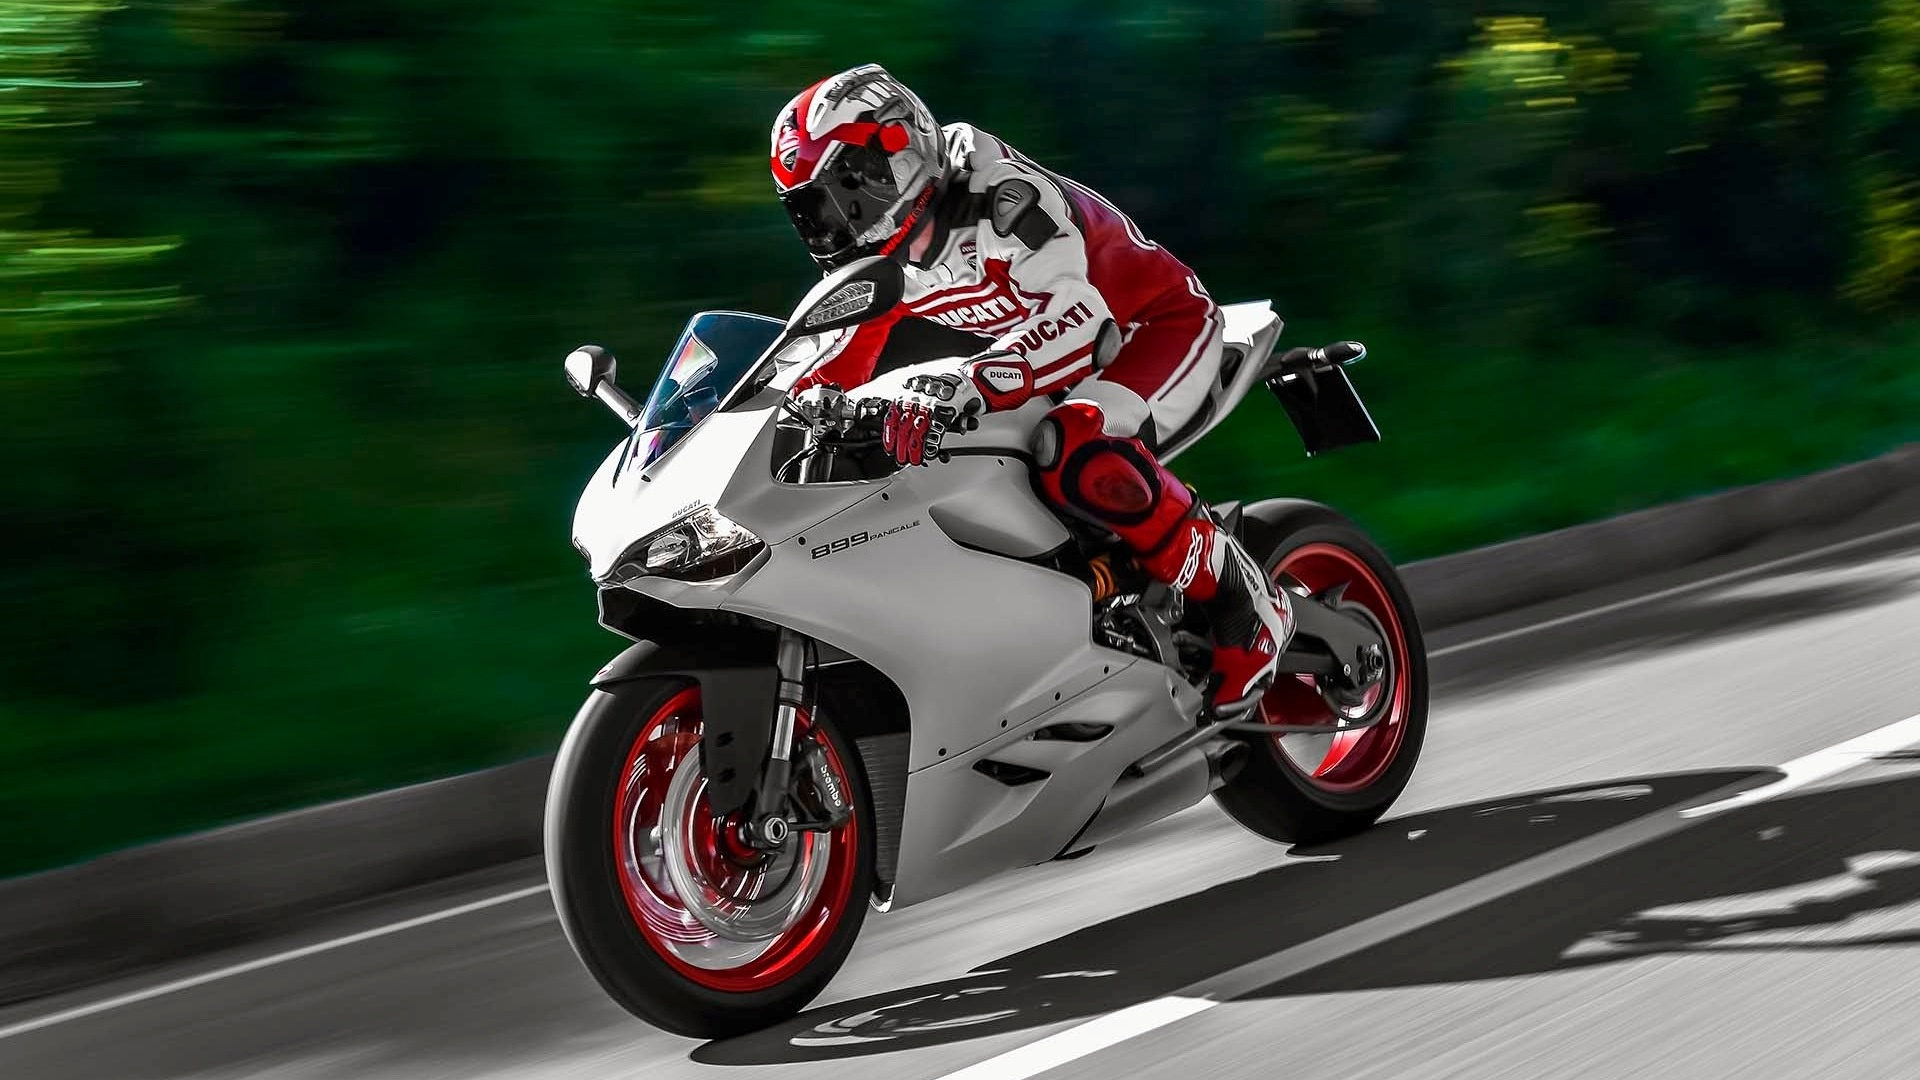 Ducati Superbike 899 Panigale 2014 Wallpapers   1920x1080   440930 1920x1080